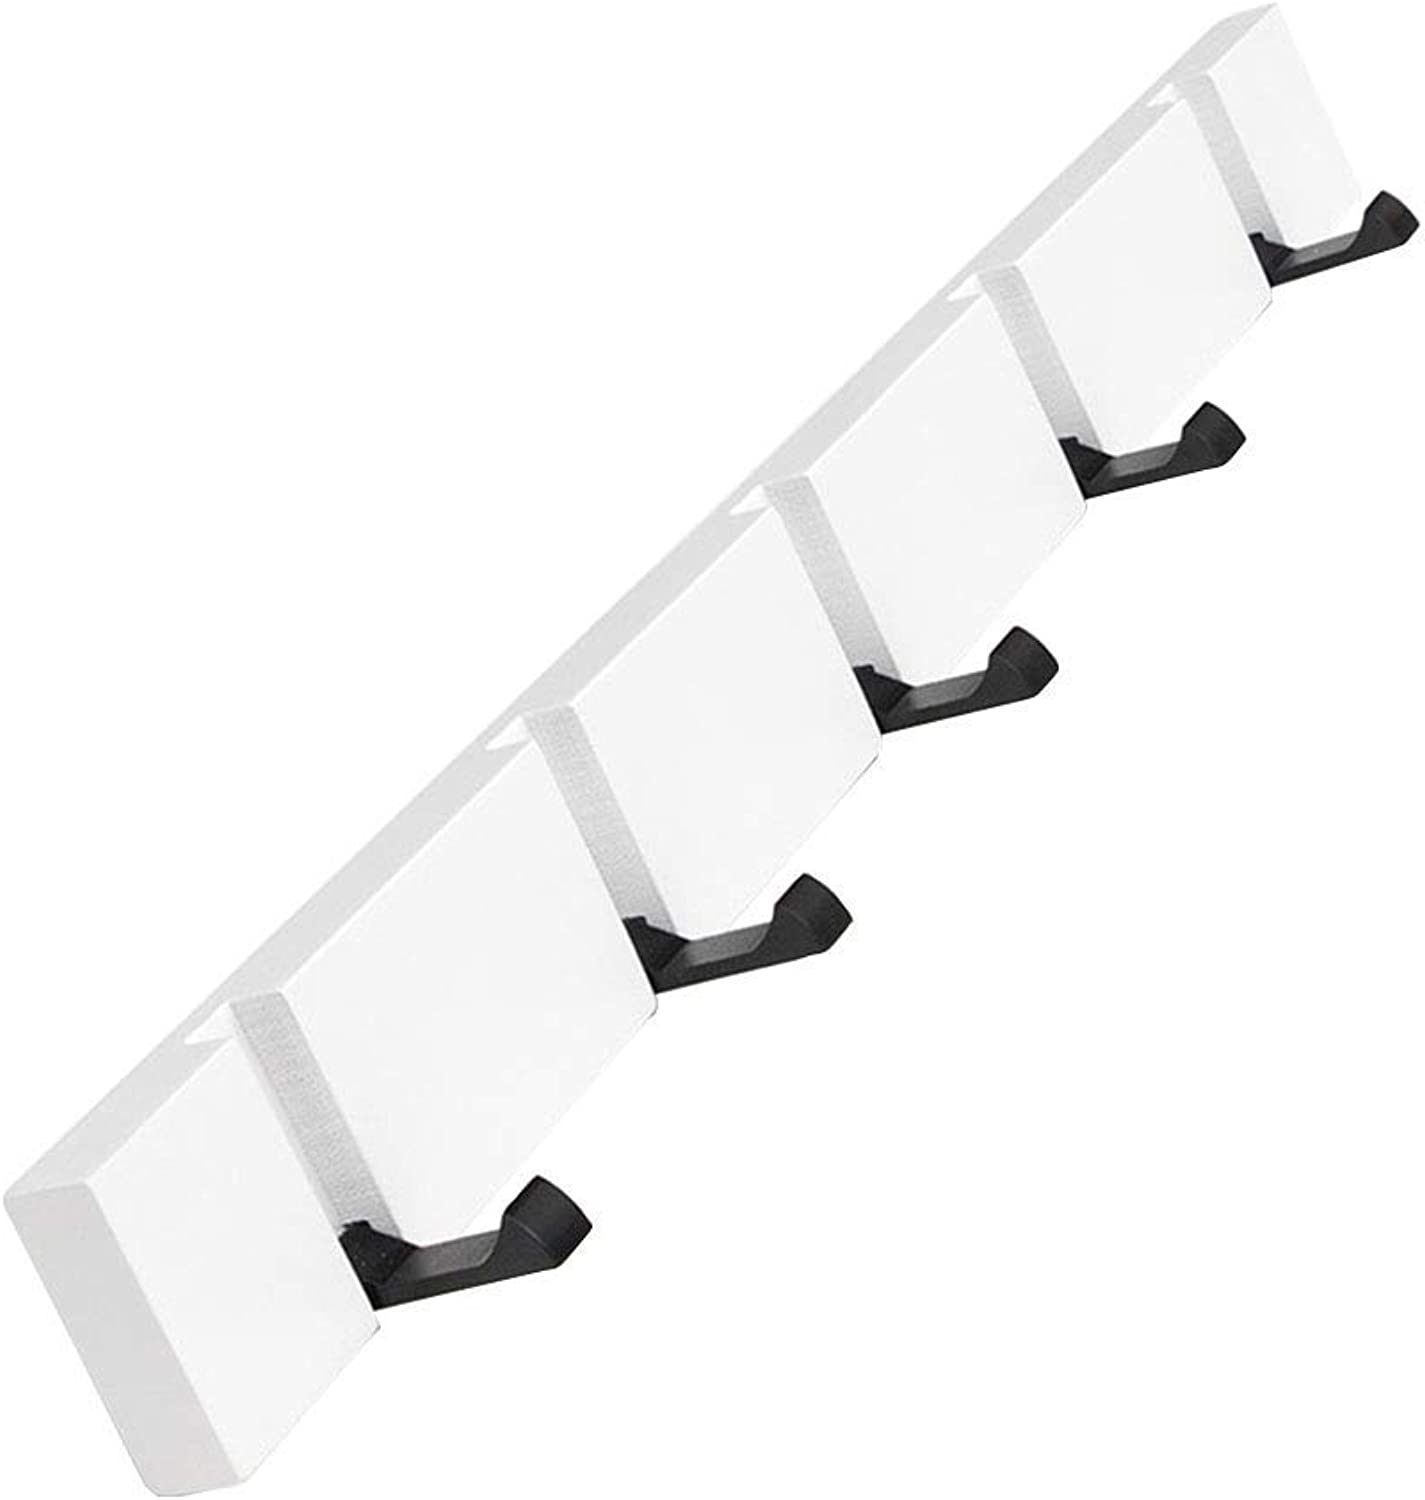 DYR Wall-Mounted Coat Rack Modern, Elegant, Space-Saving Coat Rack with Retractable Hooks, White (Size  50cm)